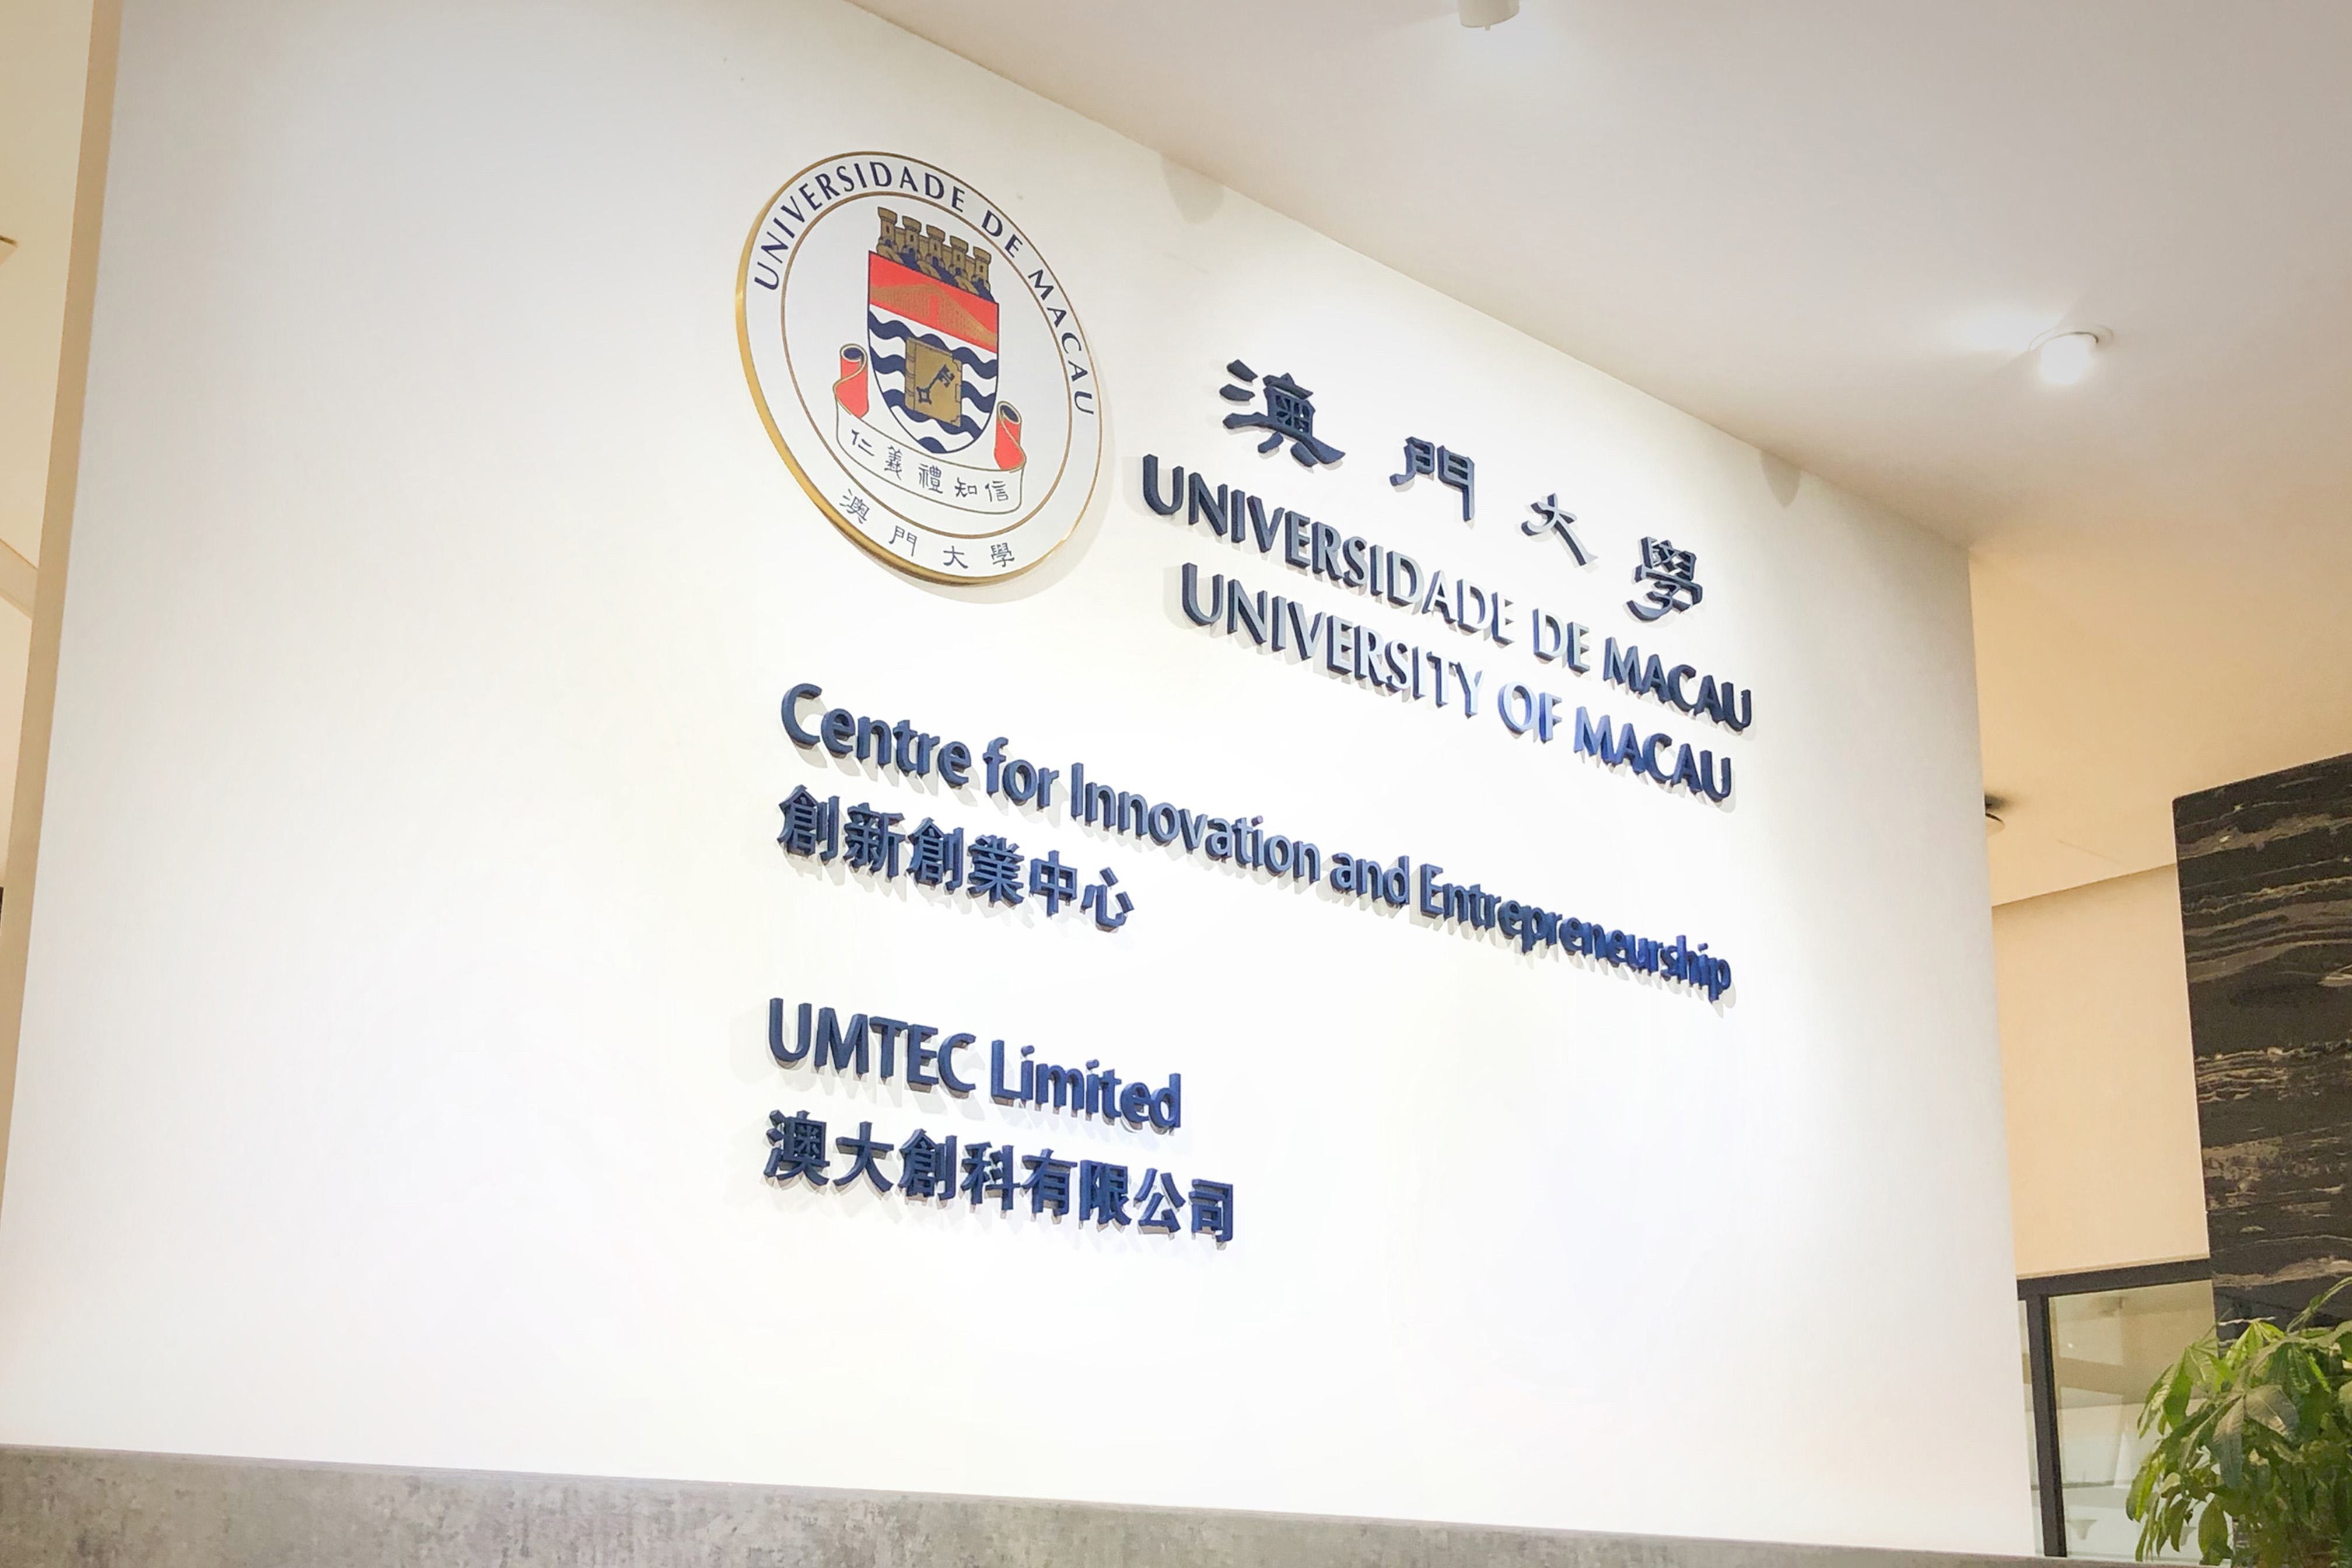 UM's Centre for Innovation and Entrepreneurship (CIE) has received approval to serve as national co-working space